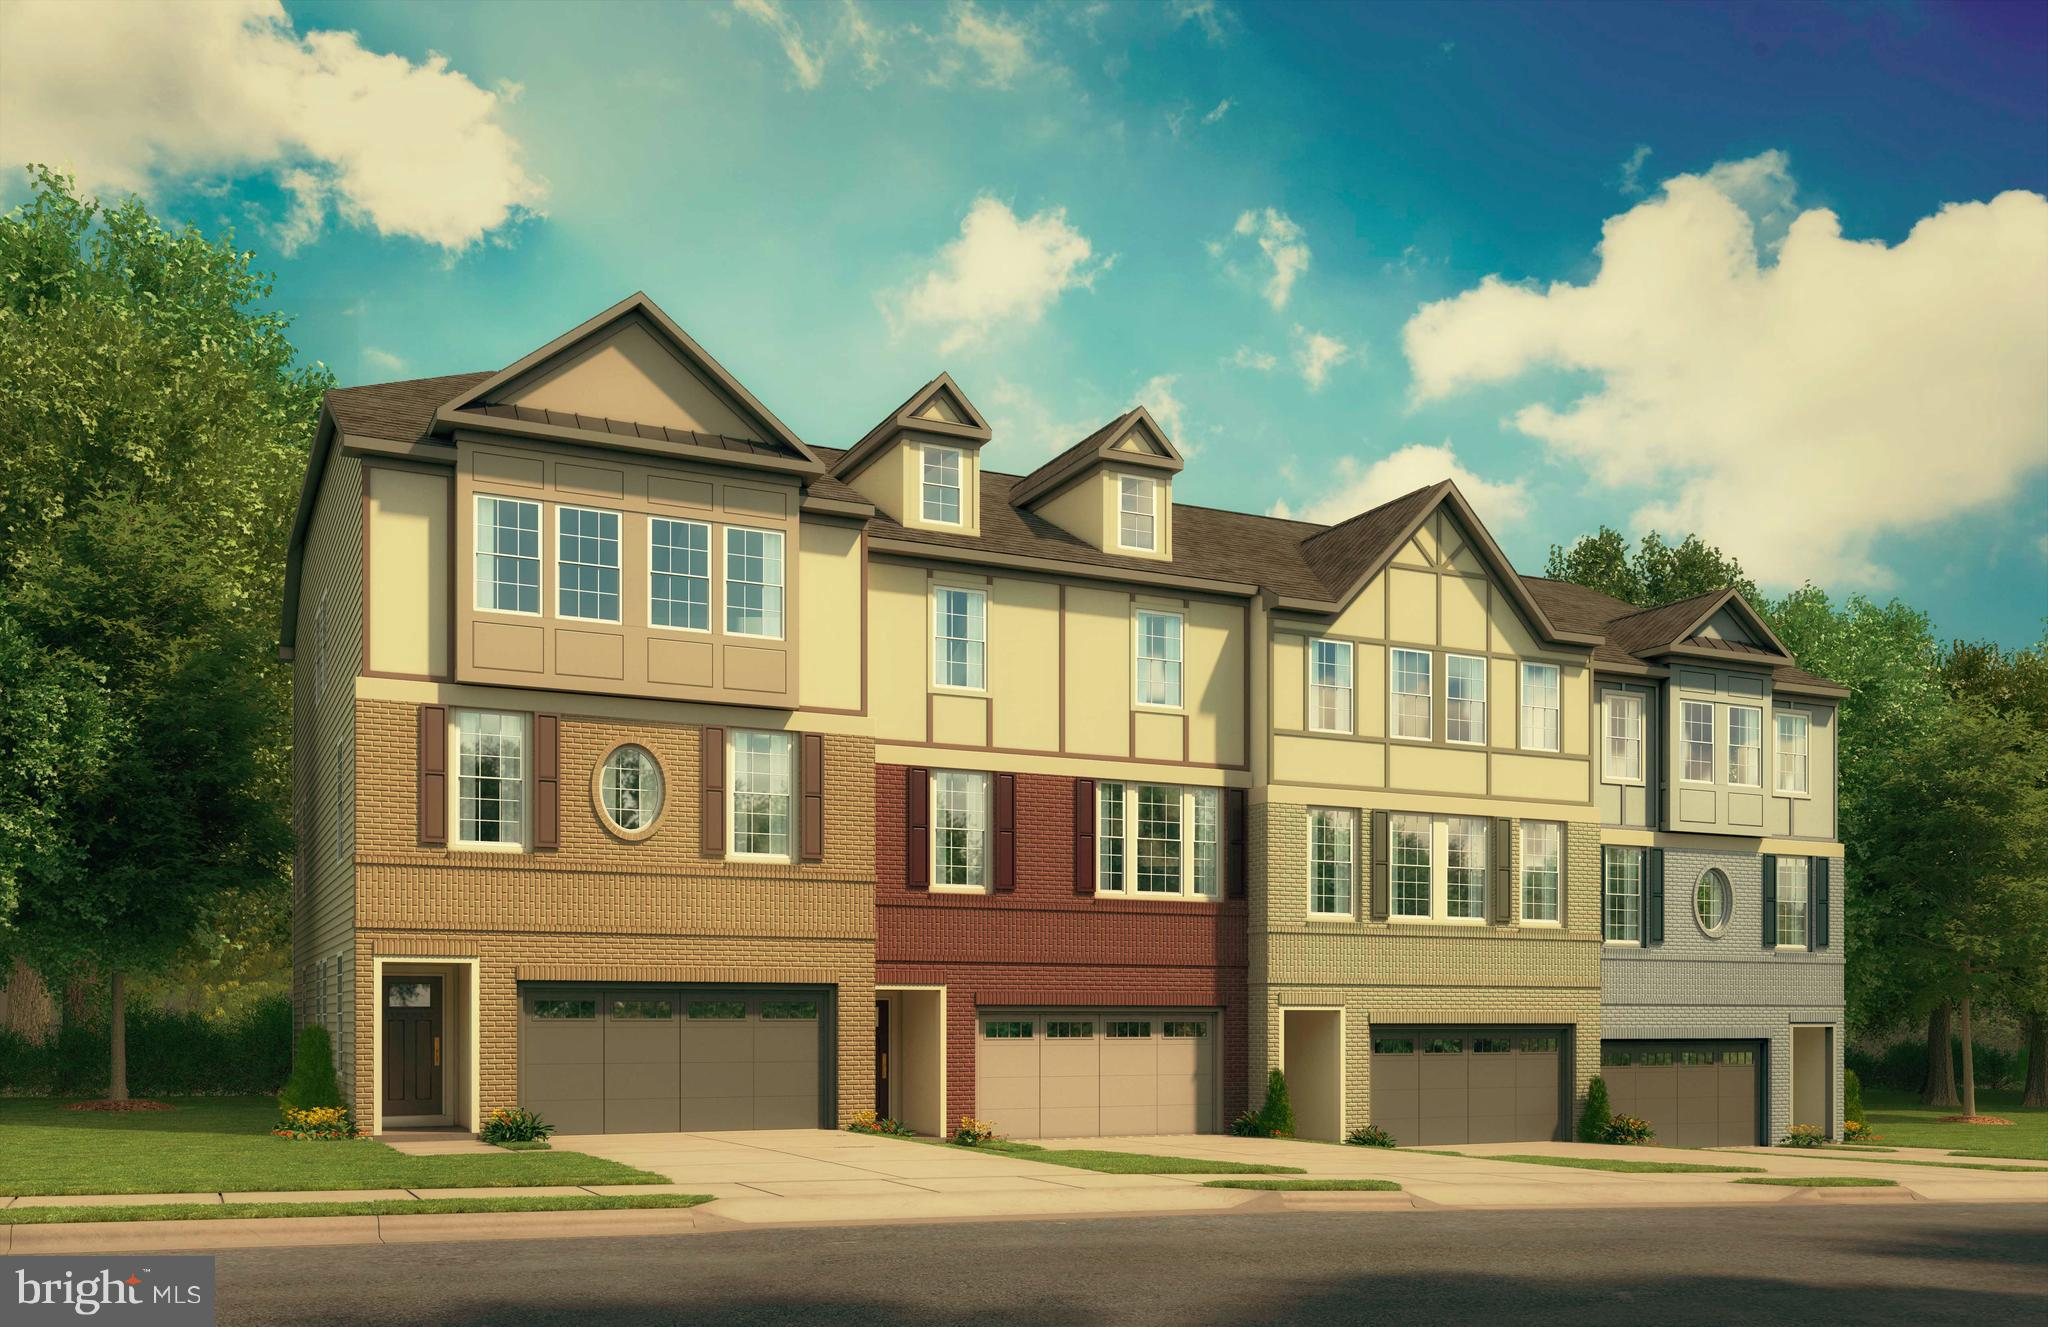 PRIVATE ELEVATOR! 55+ ACTIVE ADULT COMMUNITY! ELEGANT BRAND NEW VAN METRE TOWNHOME W/ 2 CAR GARAGE. GOURMET KIT W/ SS APPLIANCES. REAR KIT W/ FORMAL DINING RM. HW FLOOR ON MAIN LVL. CERAMIC TILE IN ALL BATHS. GRANITE COUNTERTOPS IN KIT & ALL BATHS. MASTER SUITE W/ OPT TRAY CEILING. SHOWER & TUB IN MBA . LAUNDRY ON BEDROOM LVL. OPT GAS FP IN LOWER LVL. PICS OF MODEL, FLR PLANS & OPT WILL VARY.